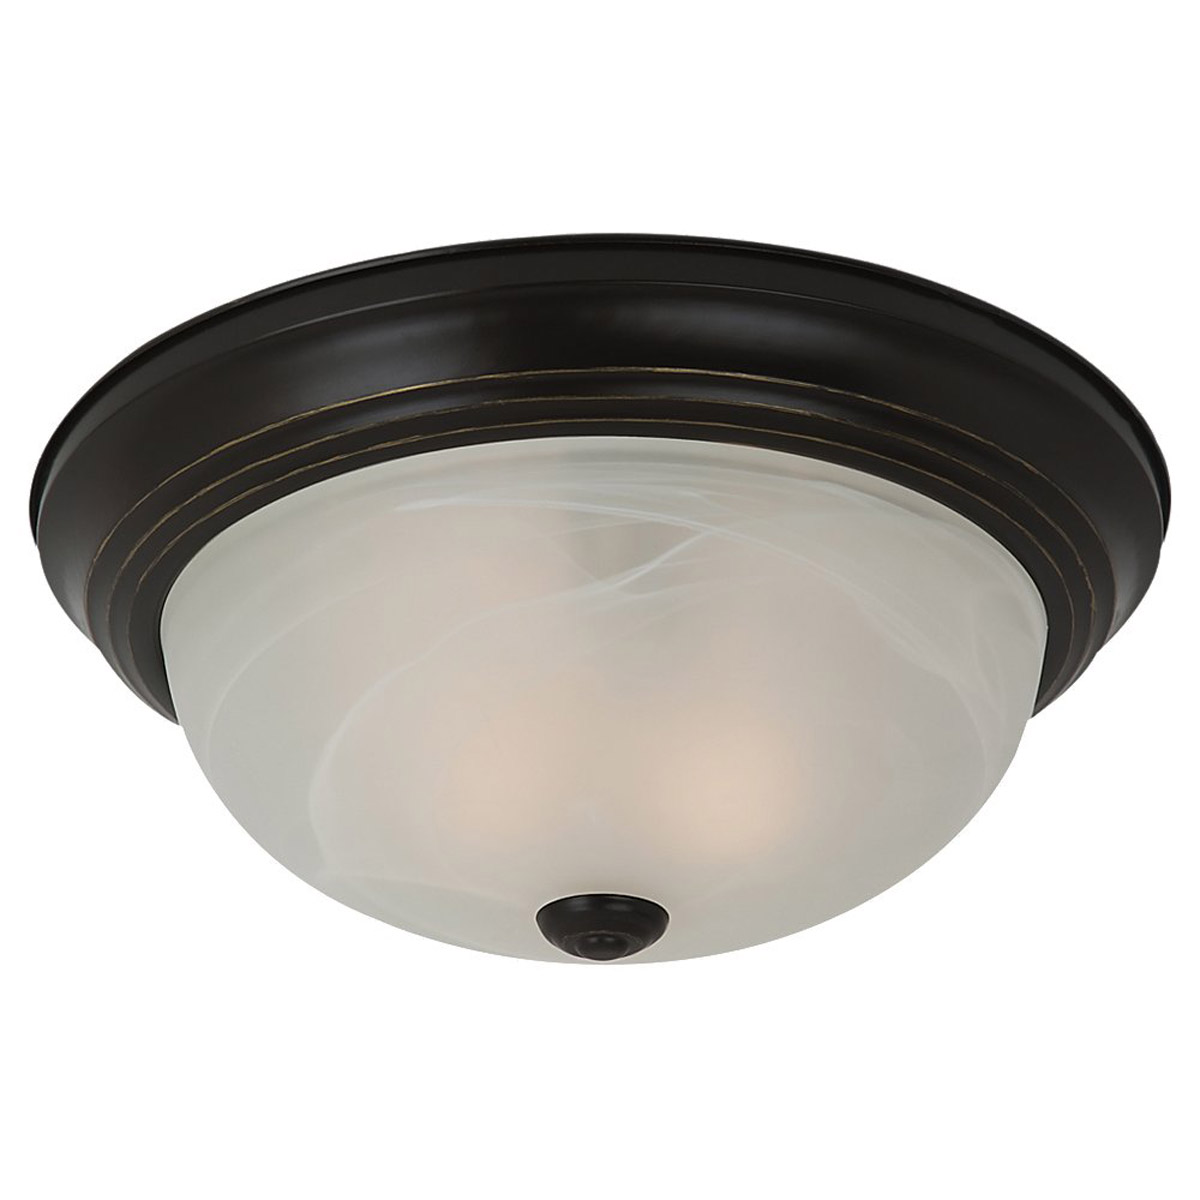 Sea Gull Lighting Windgate 1 Light Flush Mount in Heirloom Bronze 75940BLE-782 photo